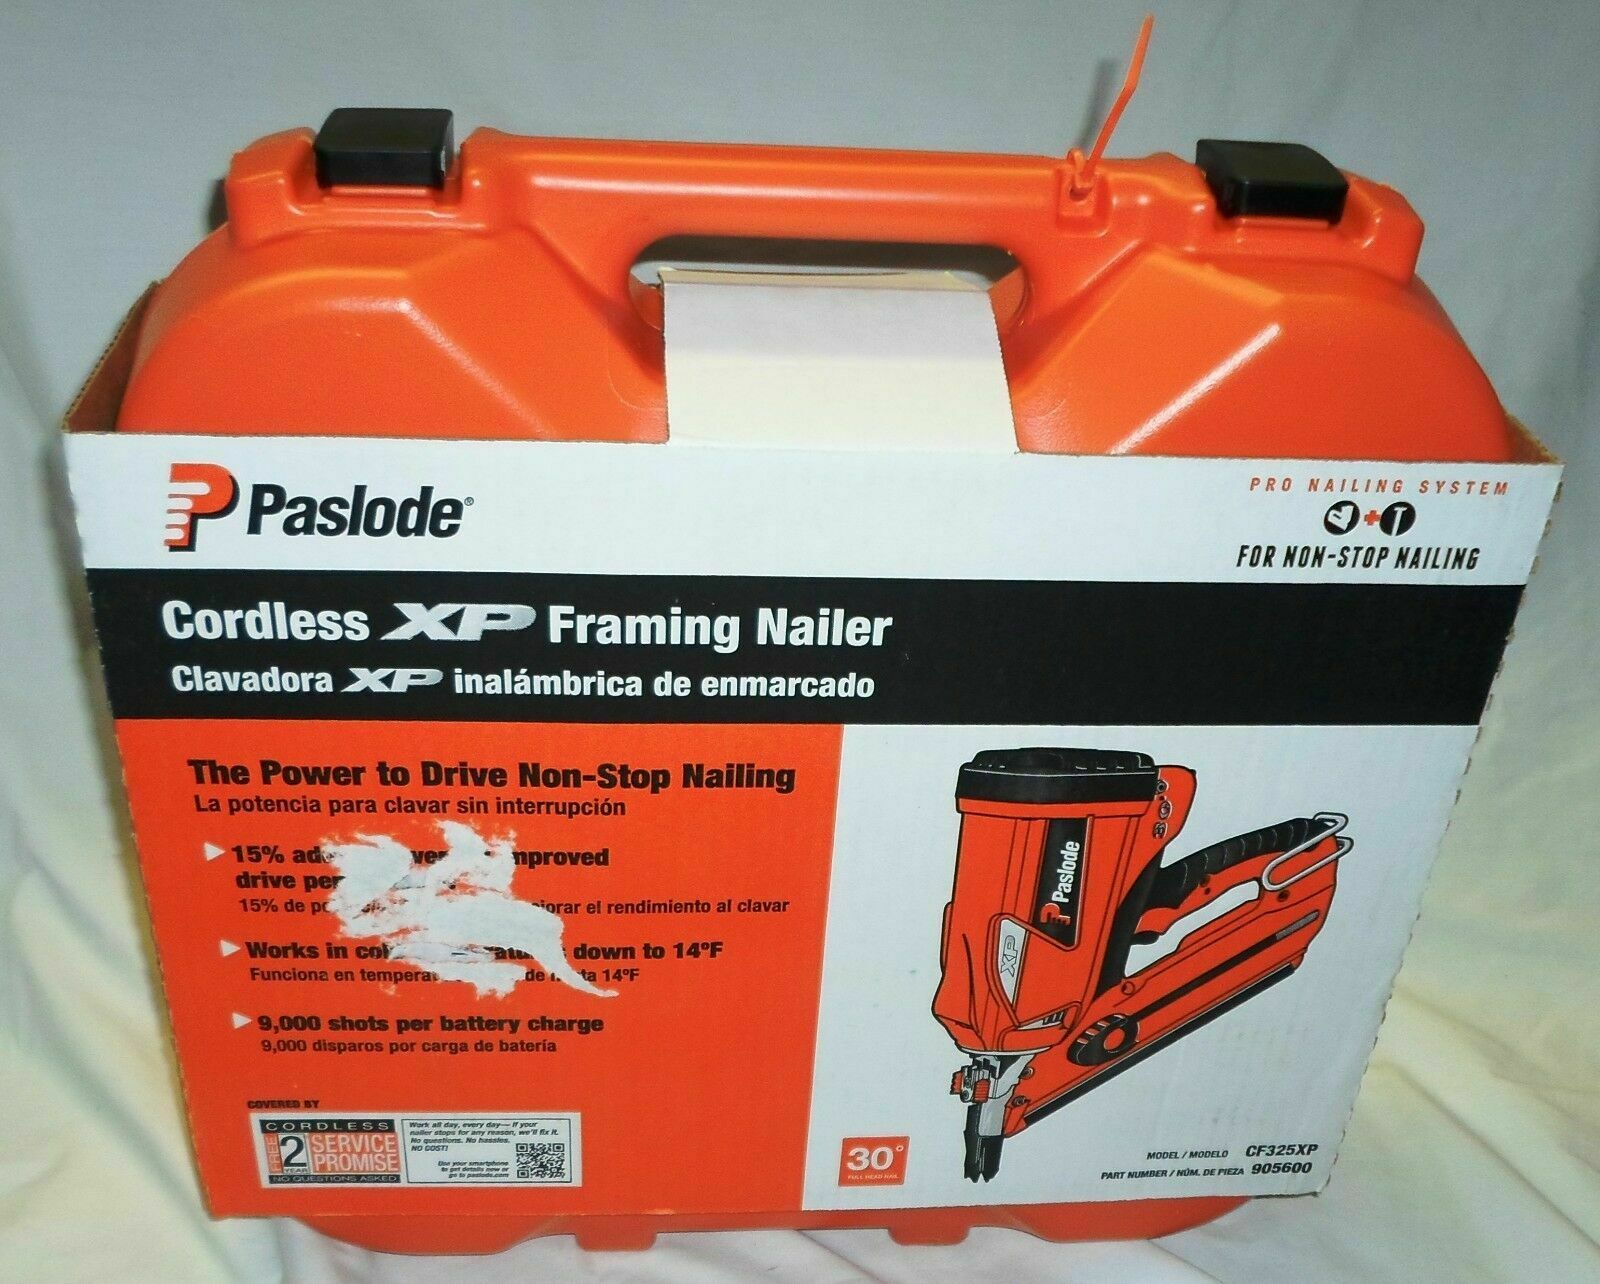 Paslode Cordless Framing Nailer CF325XP 905600 - NEW. Buy it now for 310.00